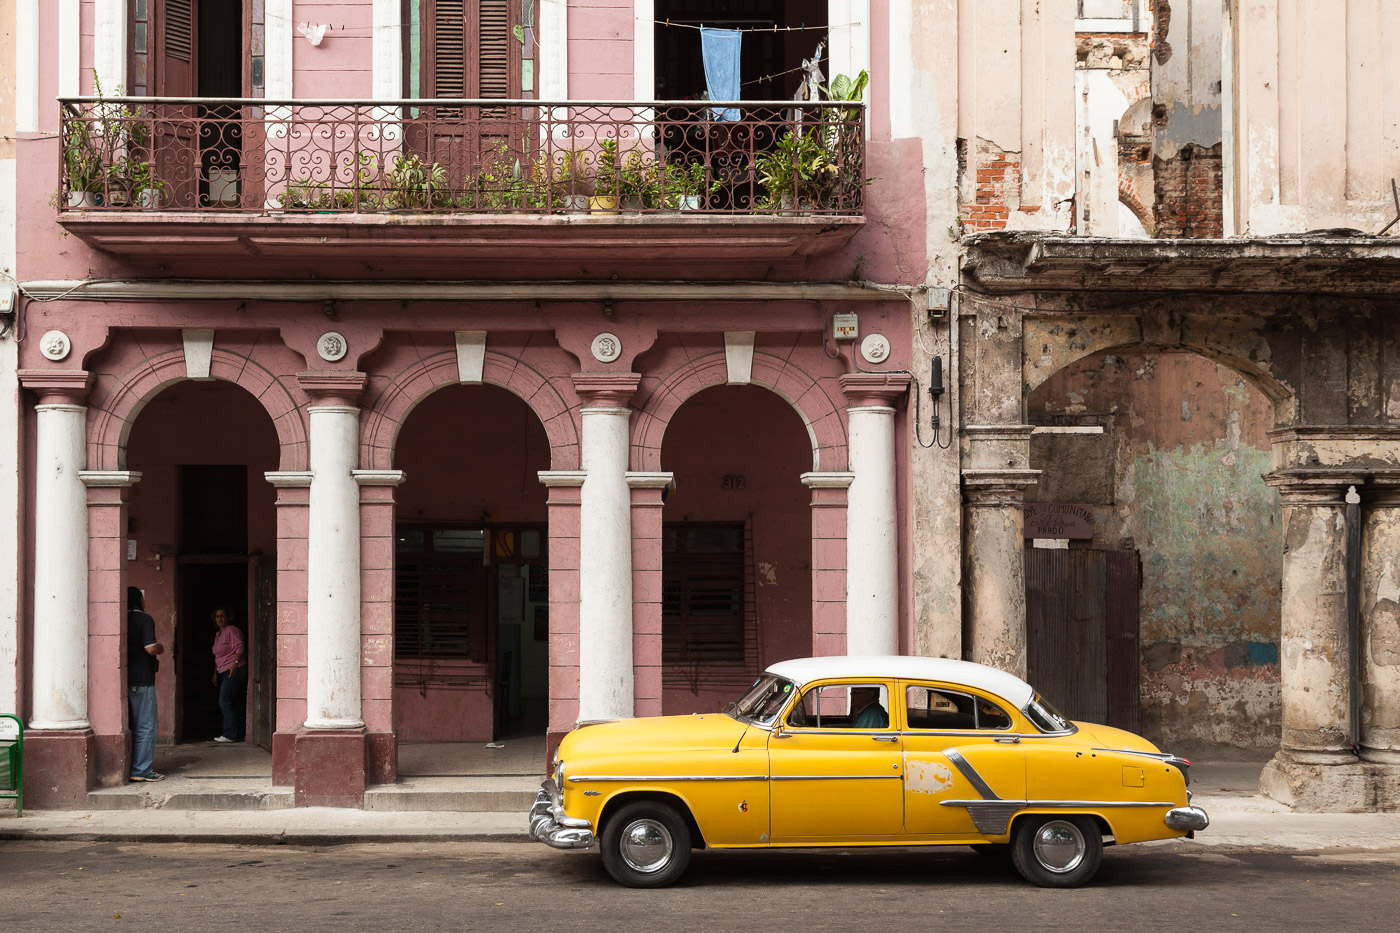 Restored Building and Old Car in Havana